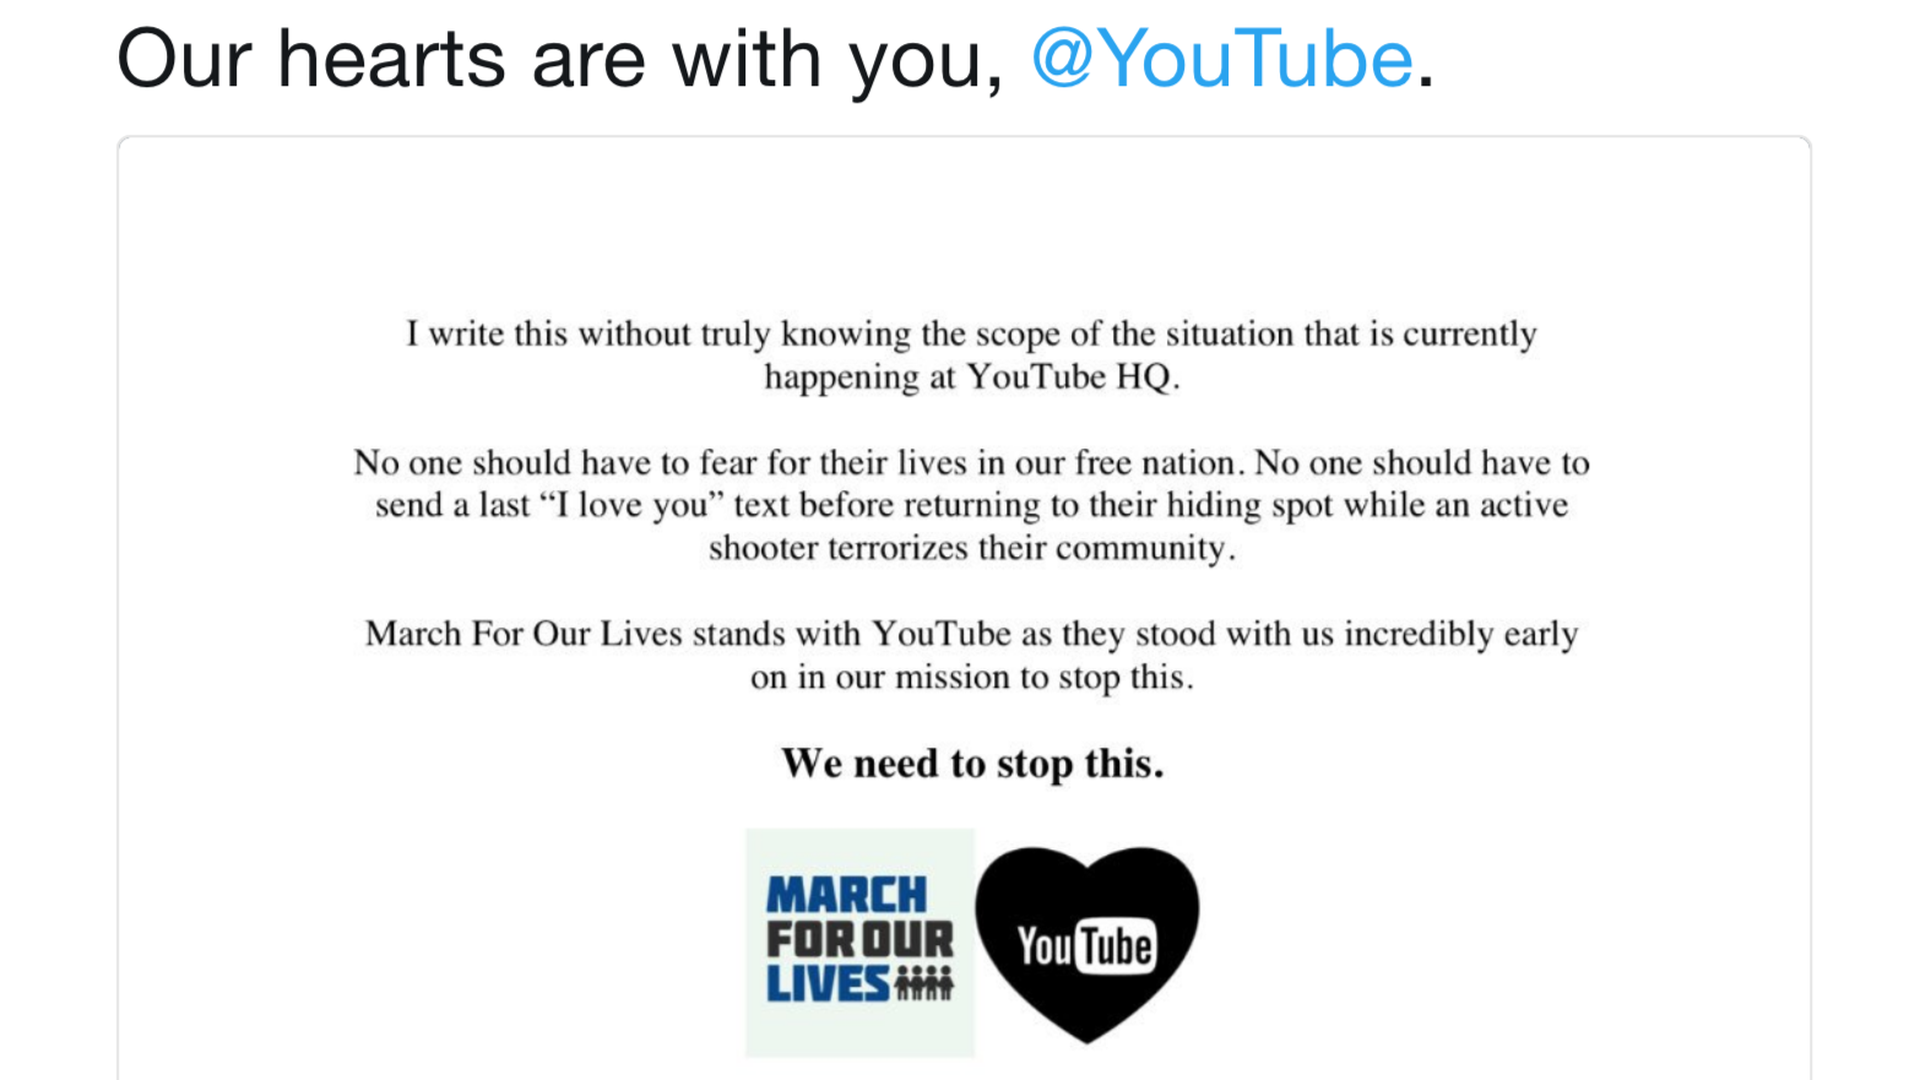 A tweet from March for our Lives organizers showing solidarity after the shooting at YouTube